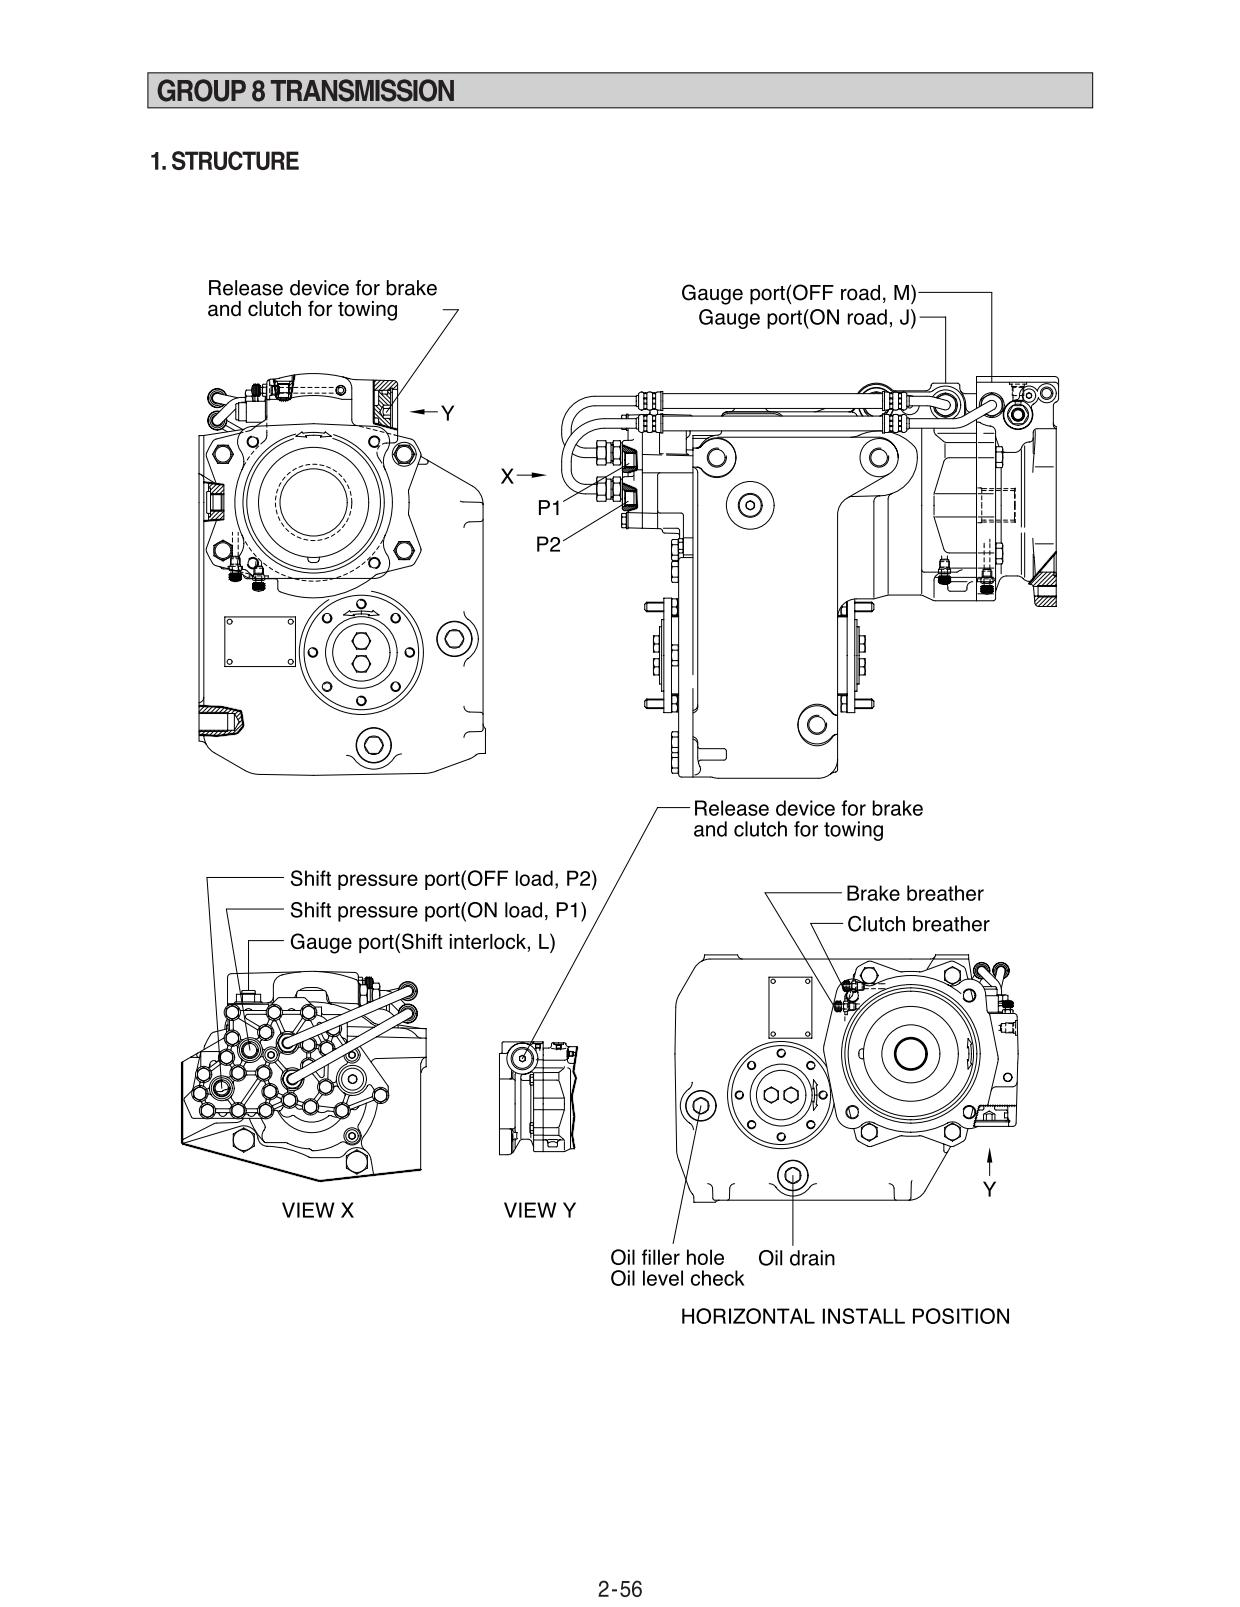 Guidelines for repair and maintenance of Hyundai R95W-3